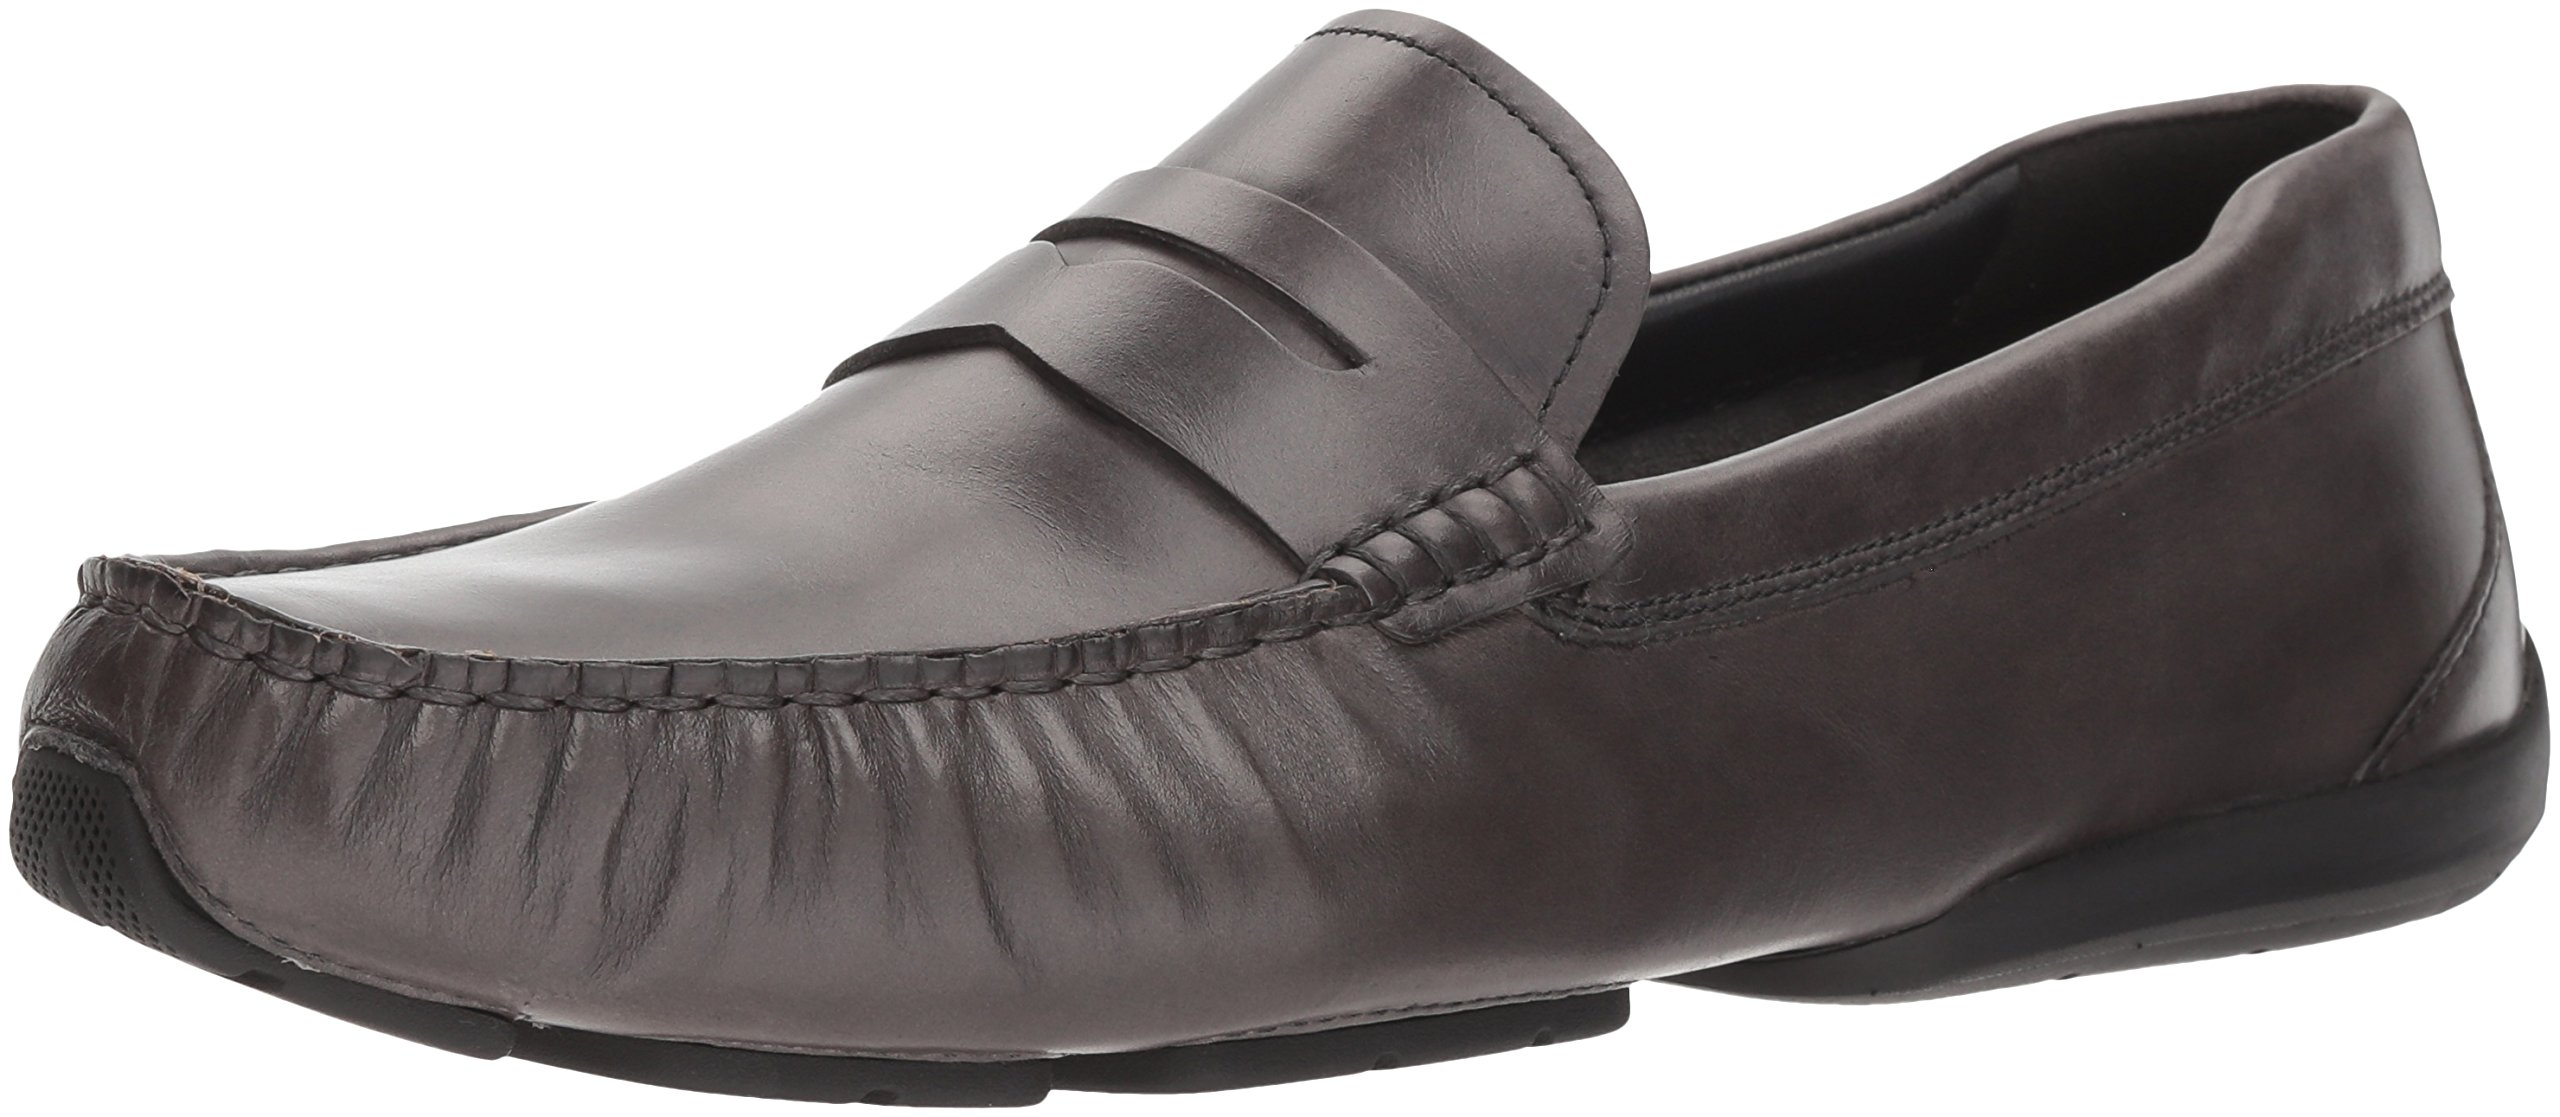 8cef561175b Get Quotations · Cole Haan Men s Branson Driver Penny Loafer